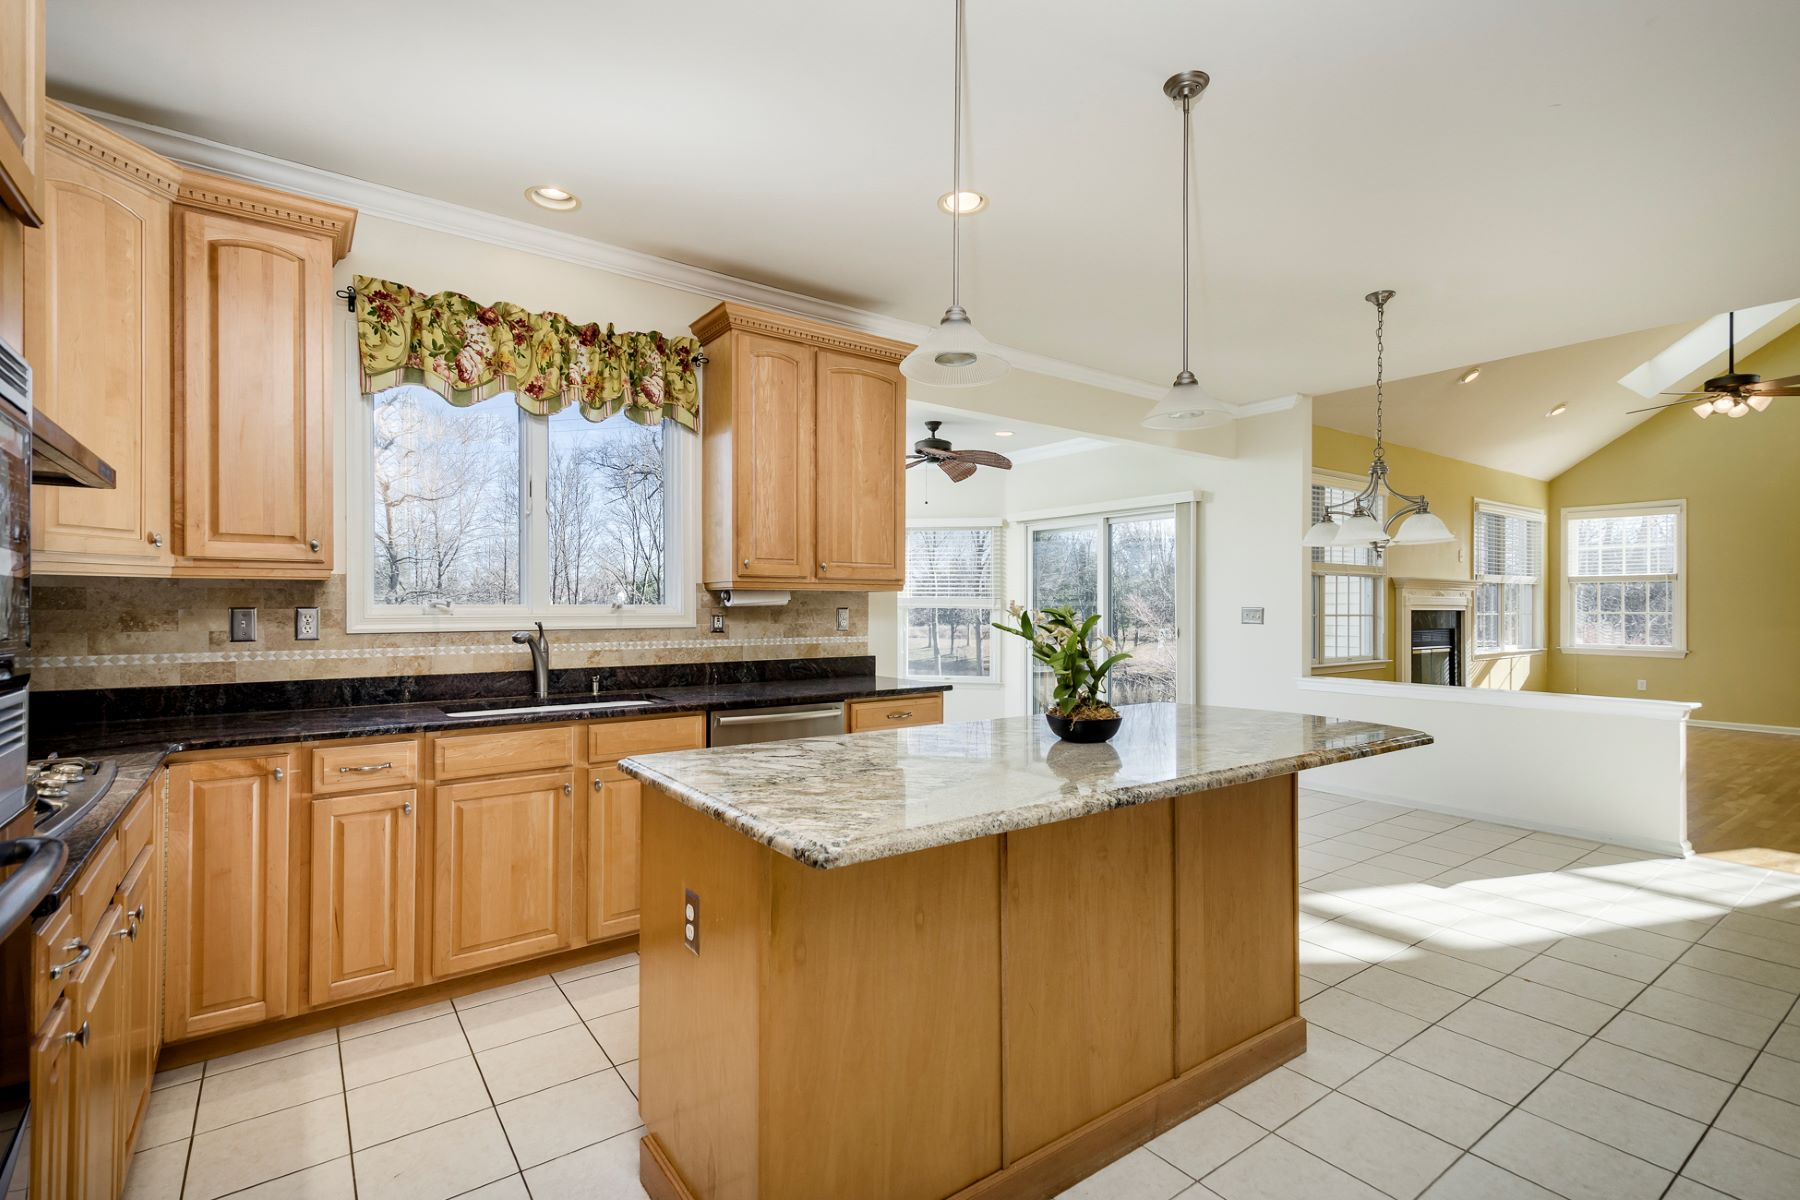 Additional photo for property listing at Cul-De-Sac Home Aglow with Light and Water Views 10 Cypress Court, Plainsboro, New Jersey 08536 United States